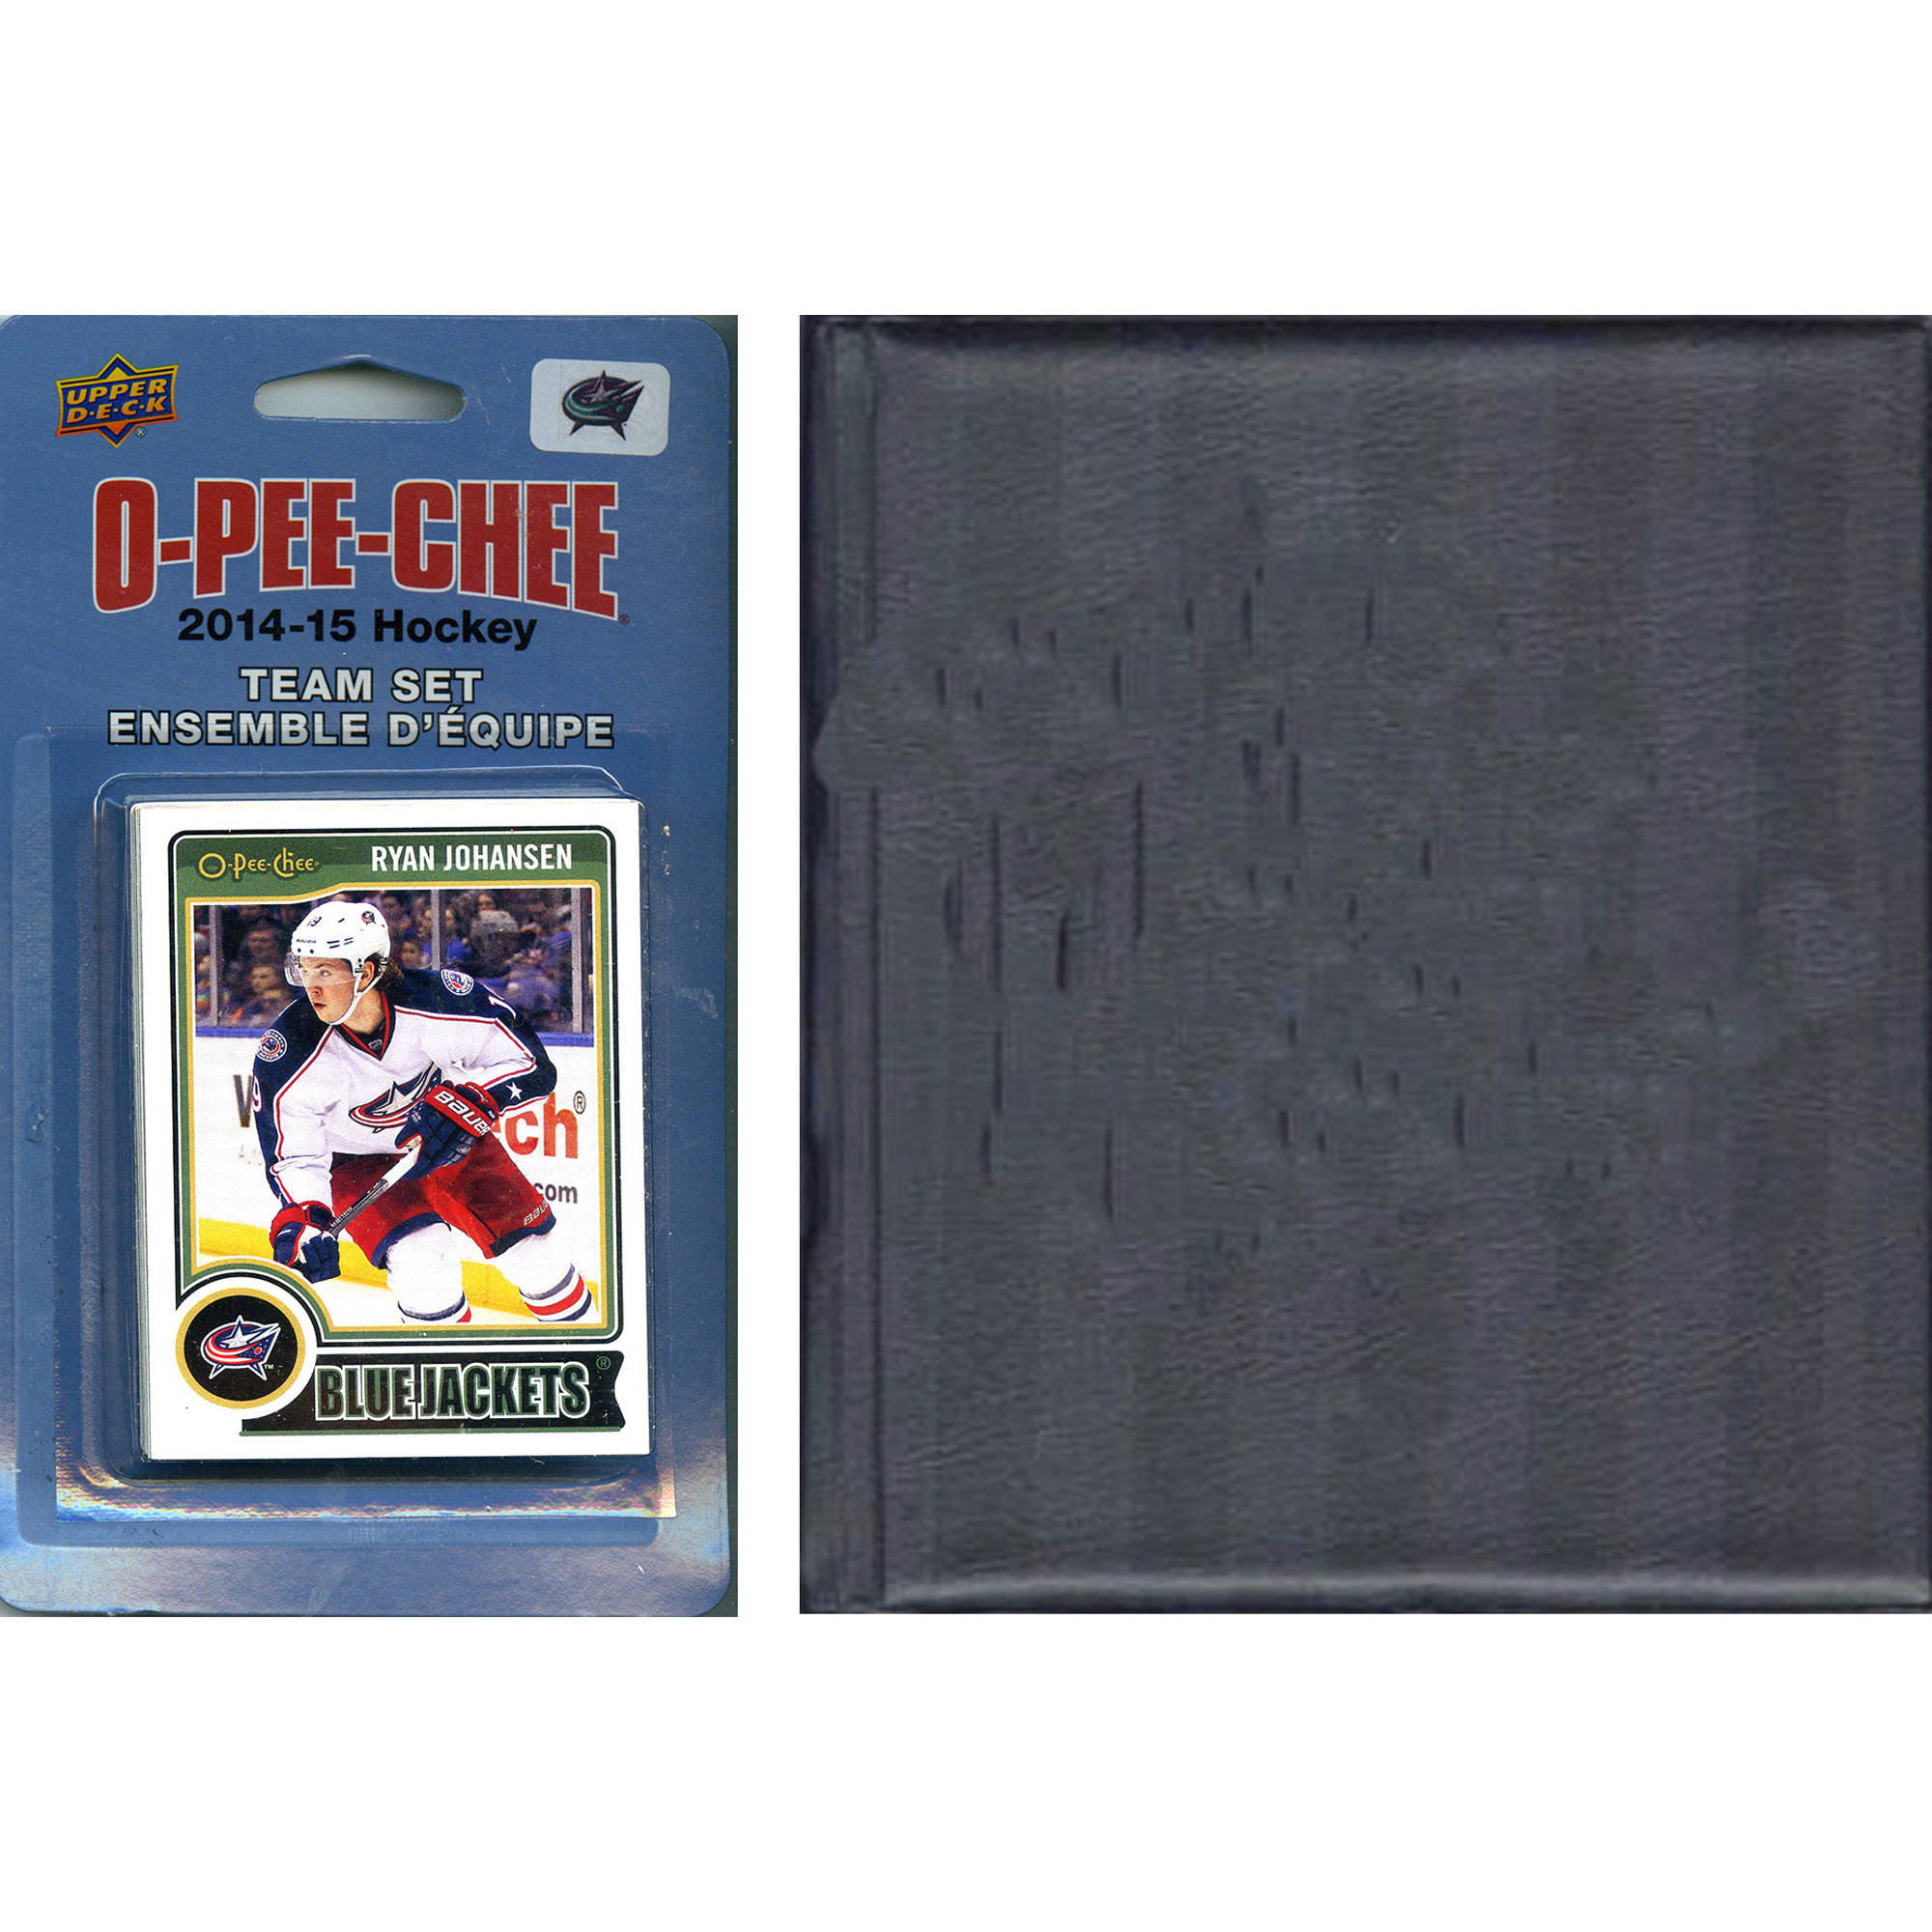 C&I Collectables NHL Columbus Blue Jackets 2014 O-Pee-Chee Team Set and Storage Album